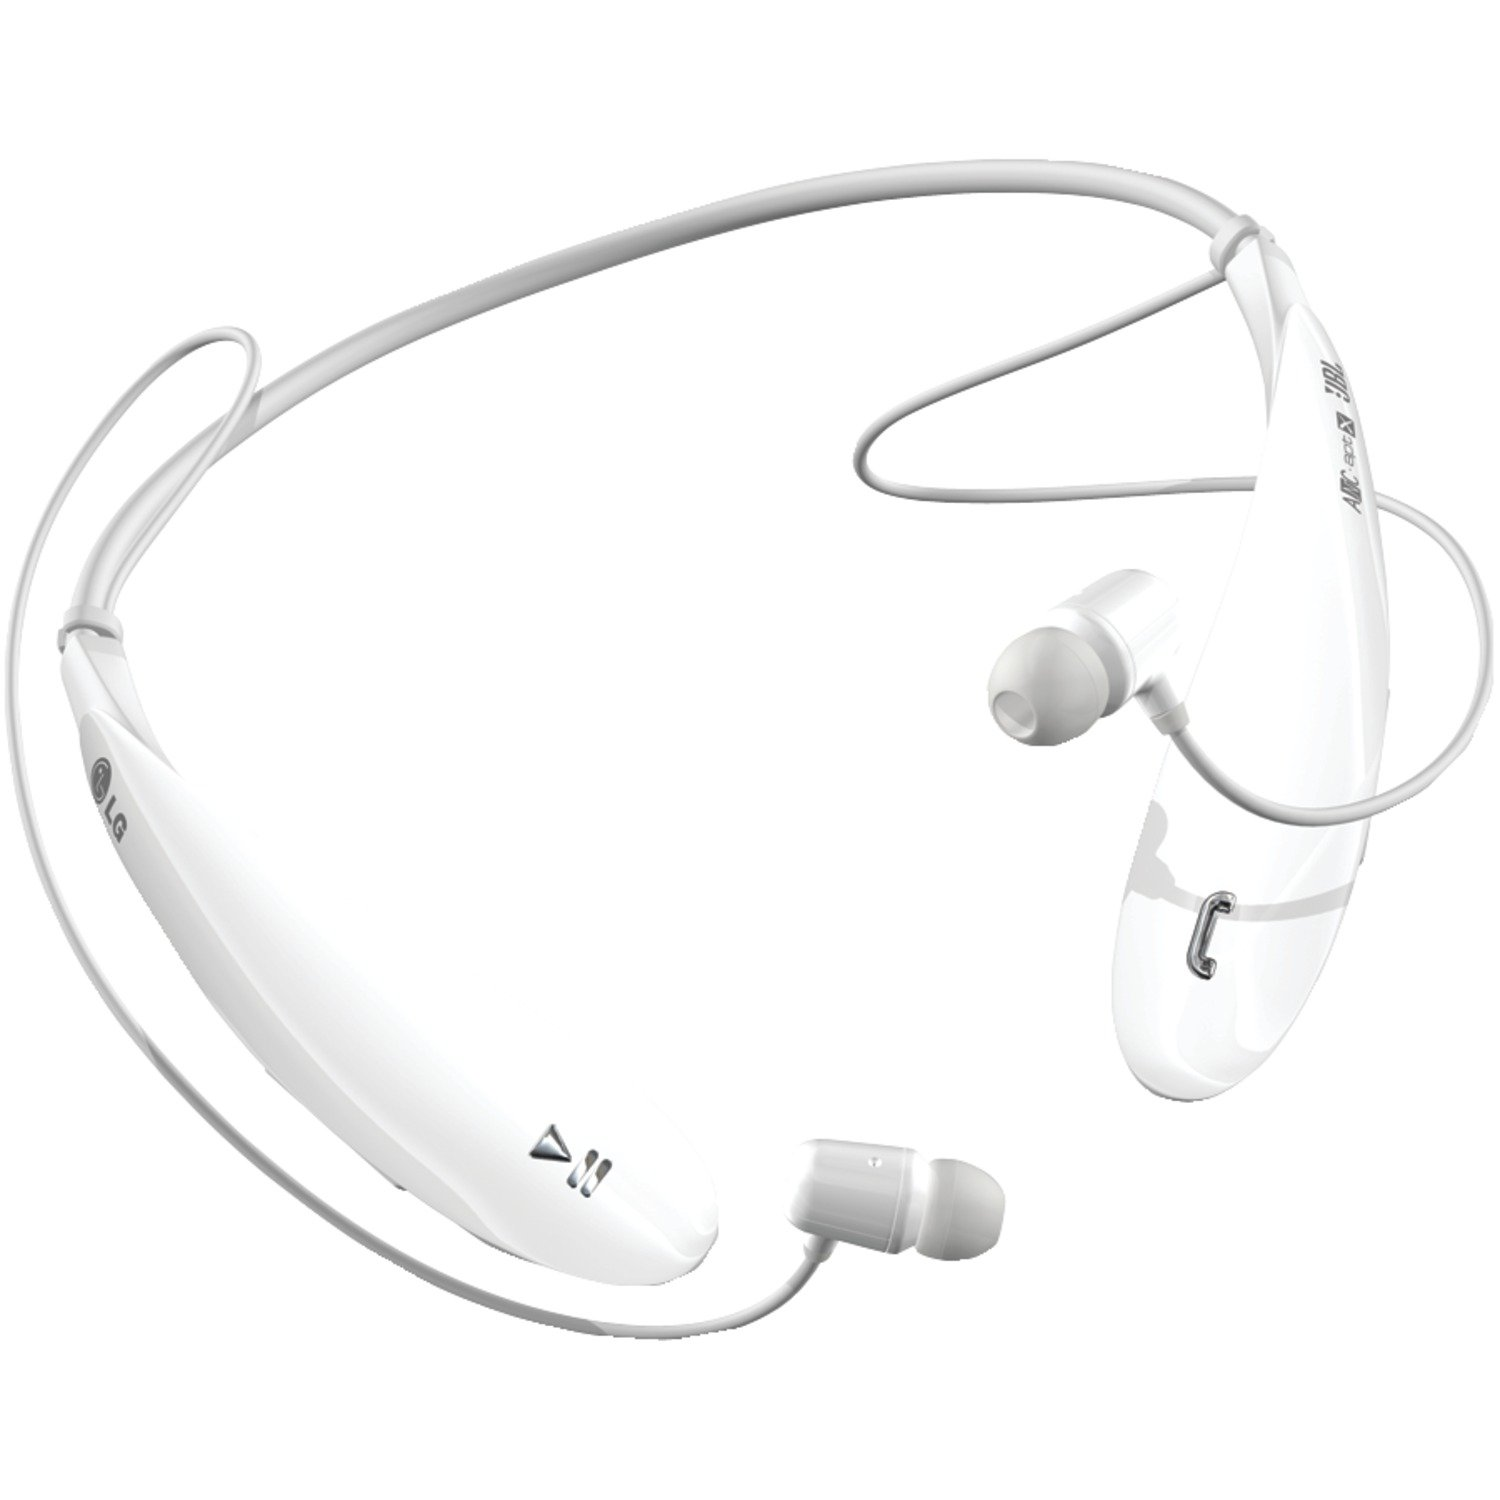 lg ultra bluetooth headset